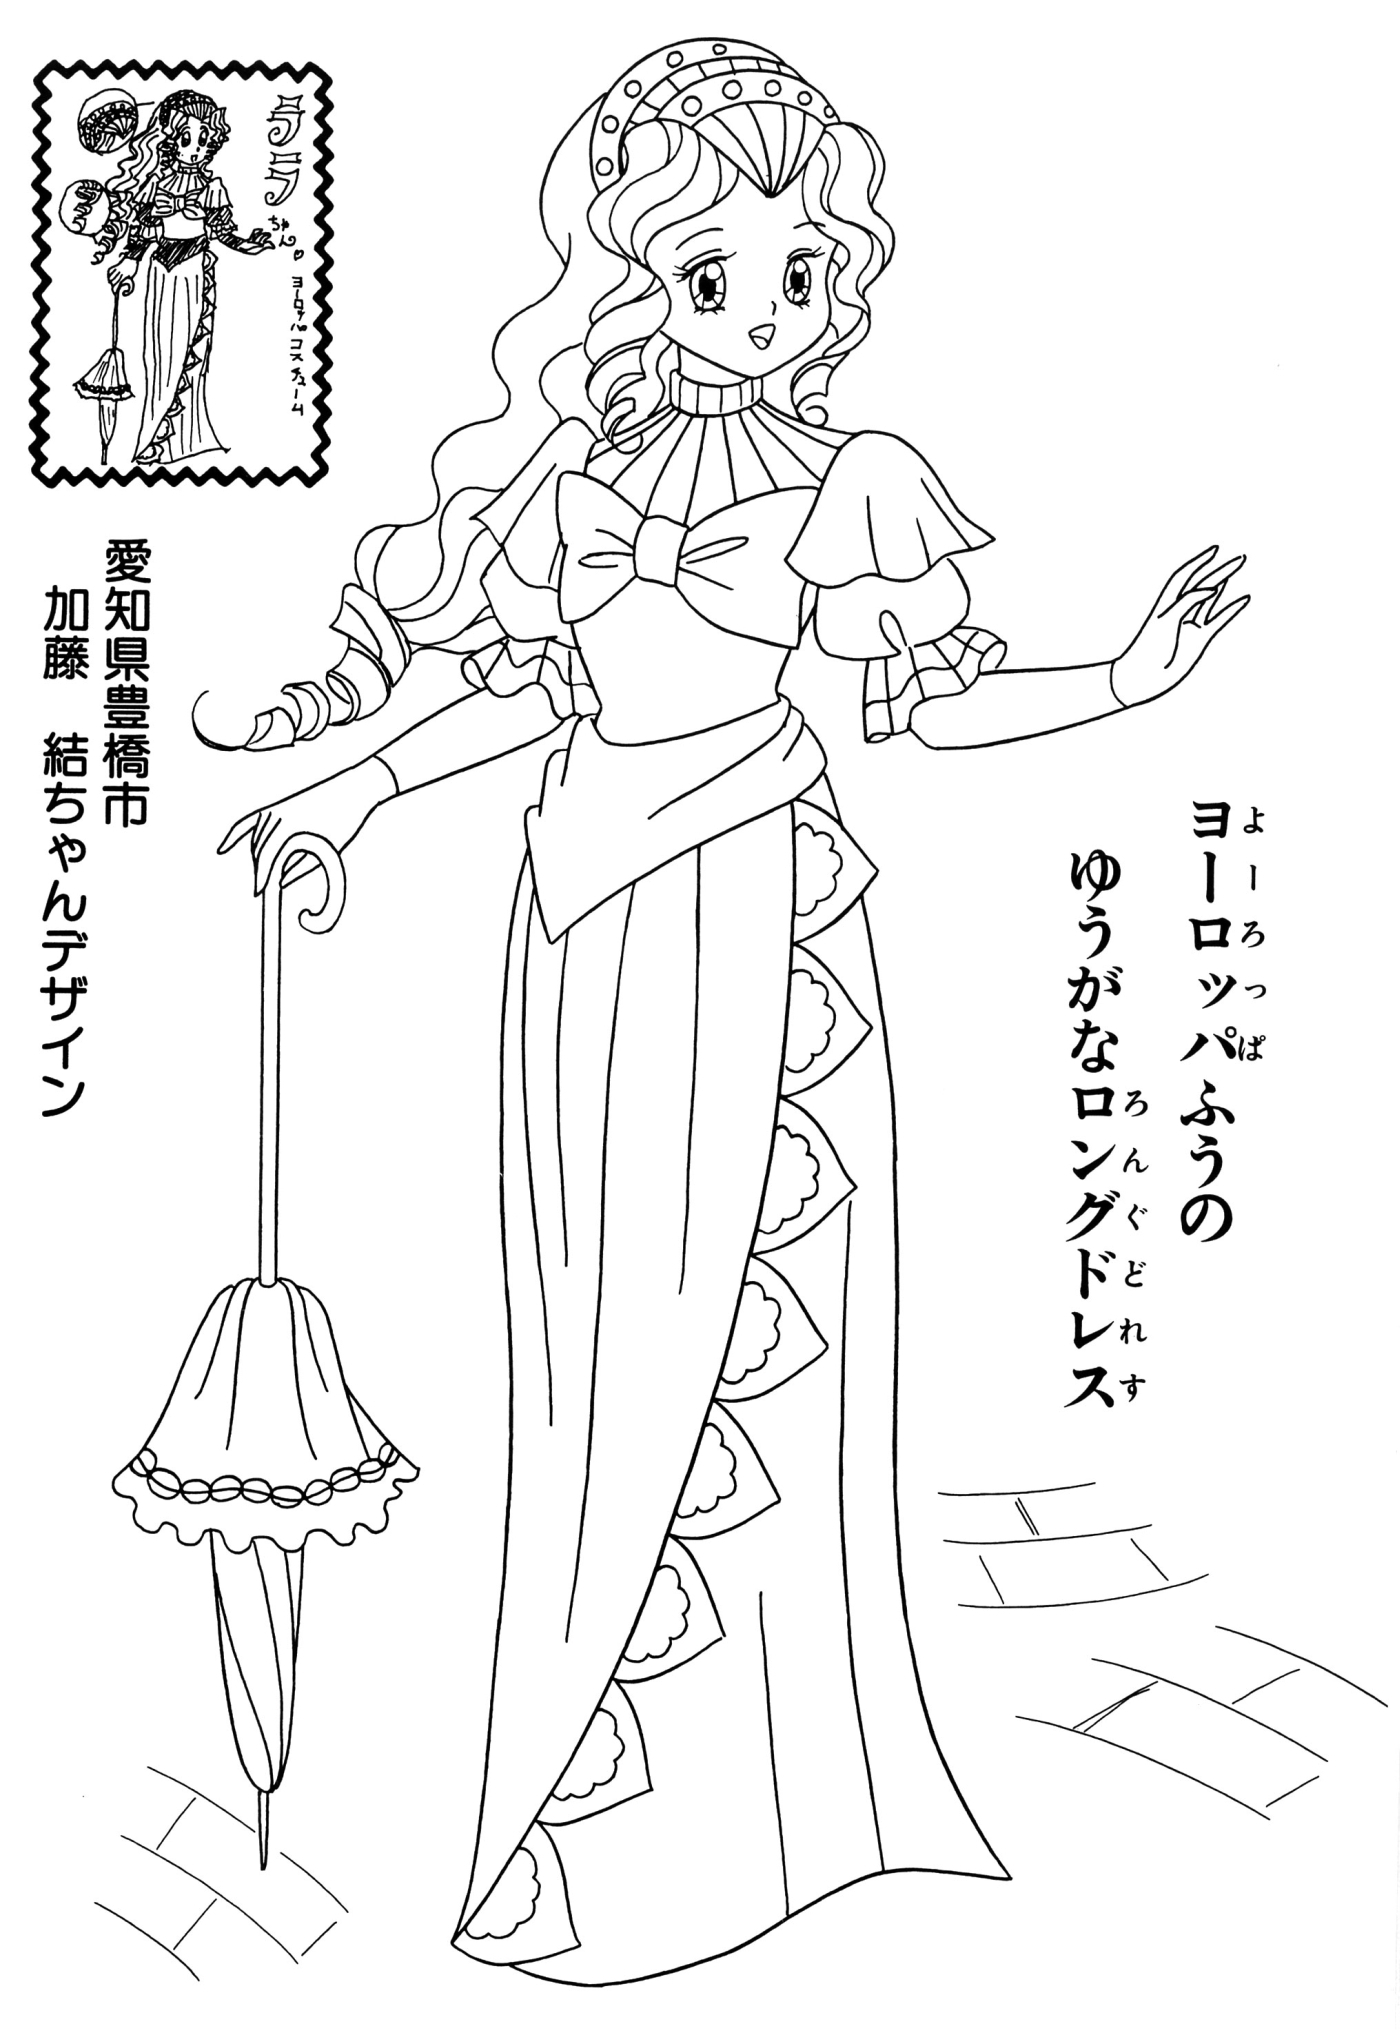 Japanese princess coloring pages - 89 Best Images About Japanese Anime Coloring Page On Pinterest Dibujo Coloring For Adults And Vintage